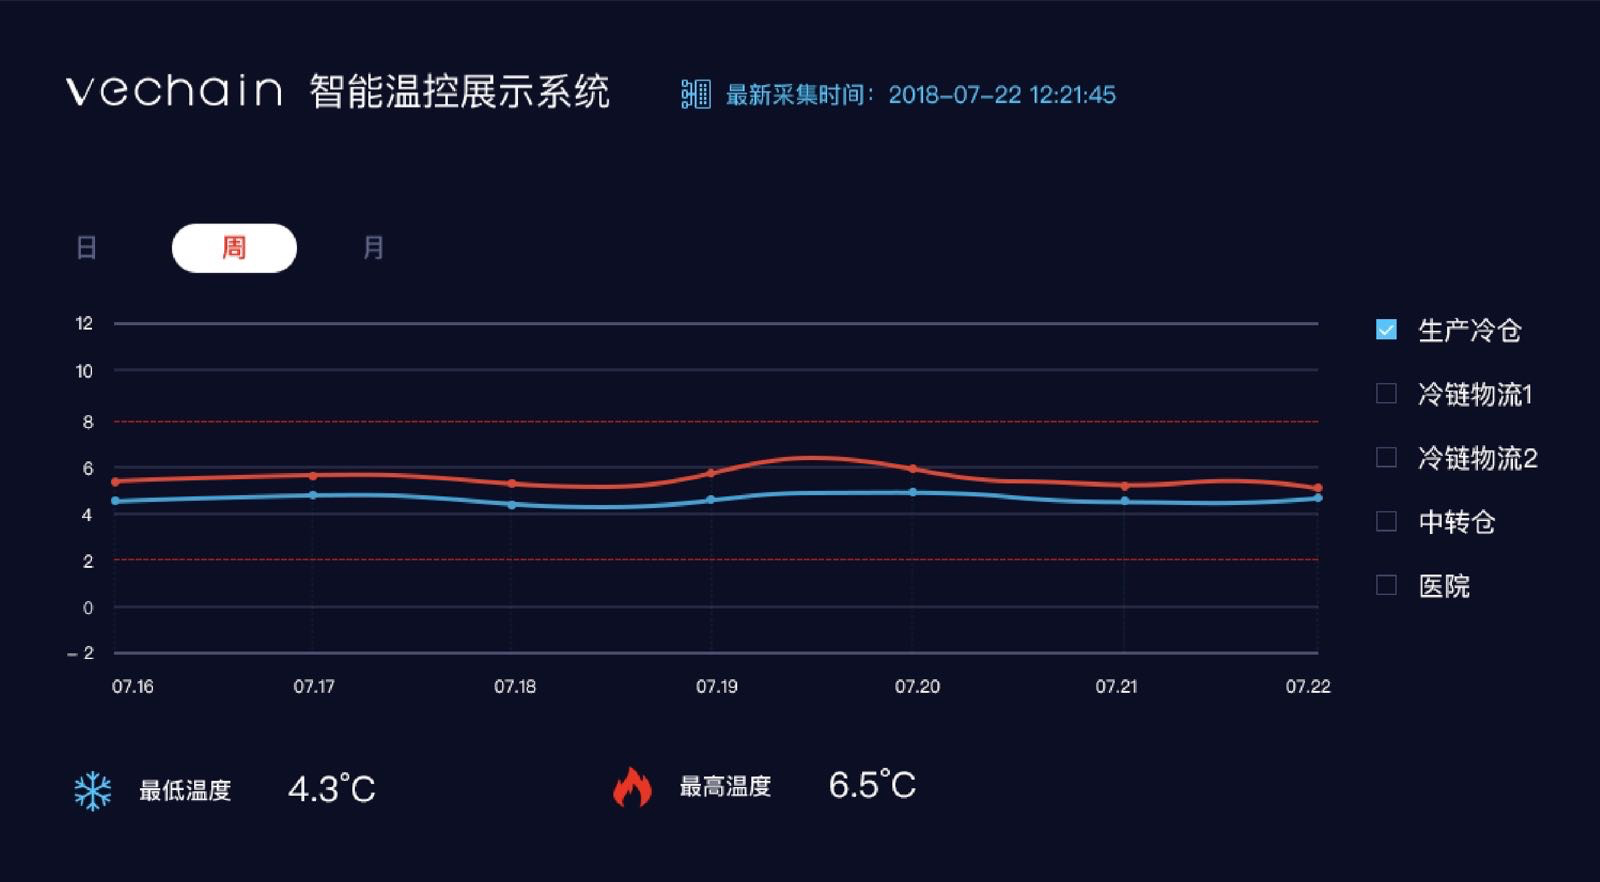 VeChain's pharmaceutical temperature tracking platform